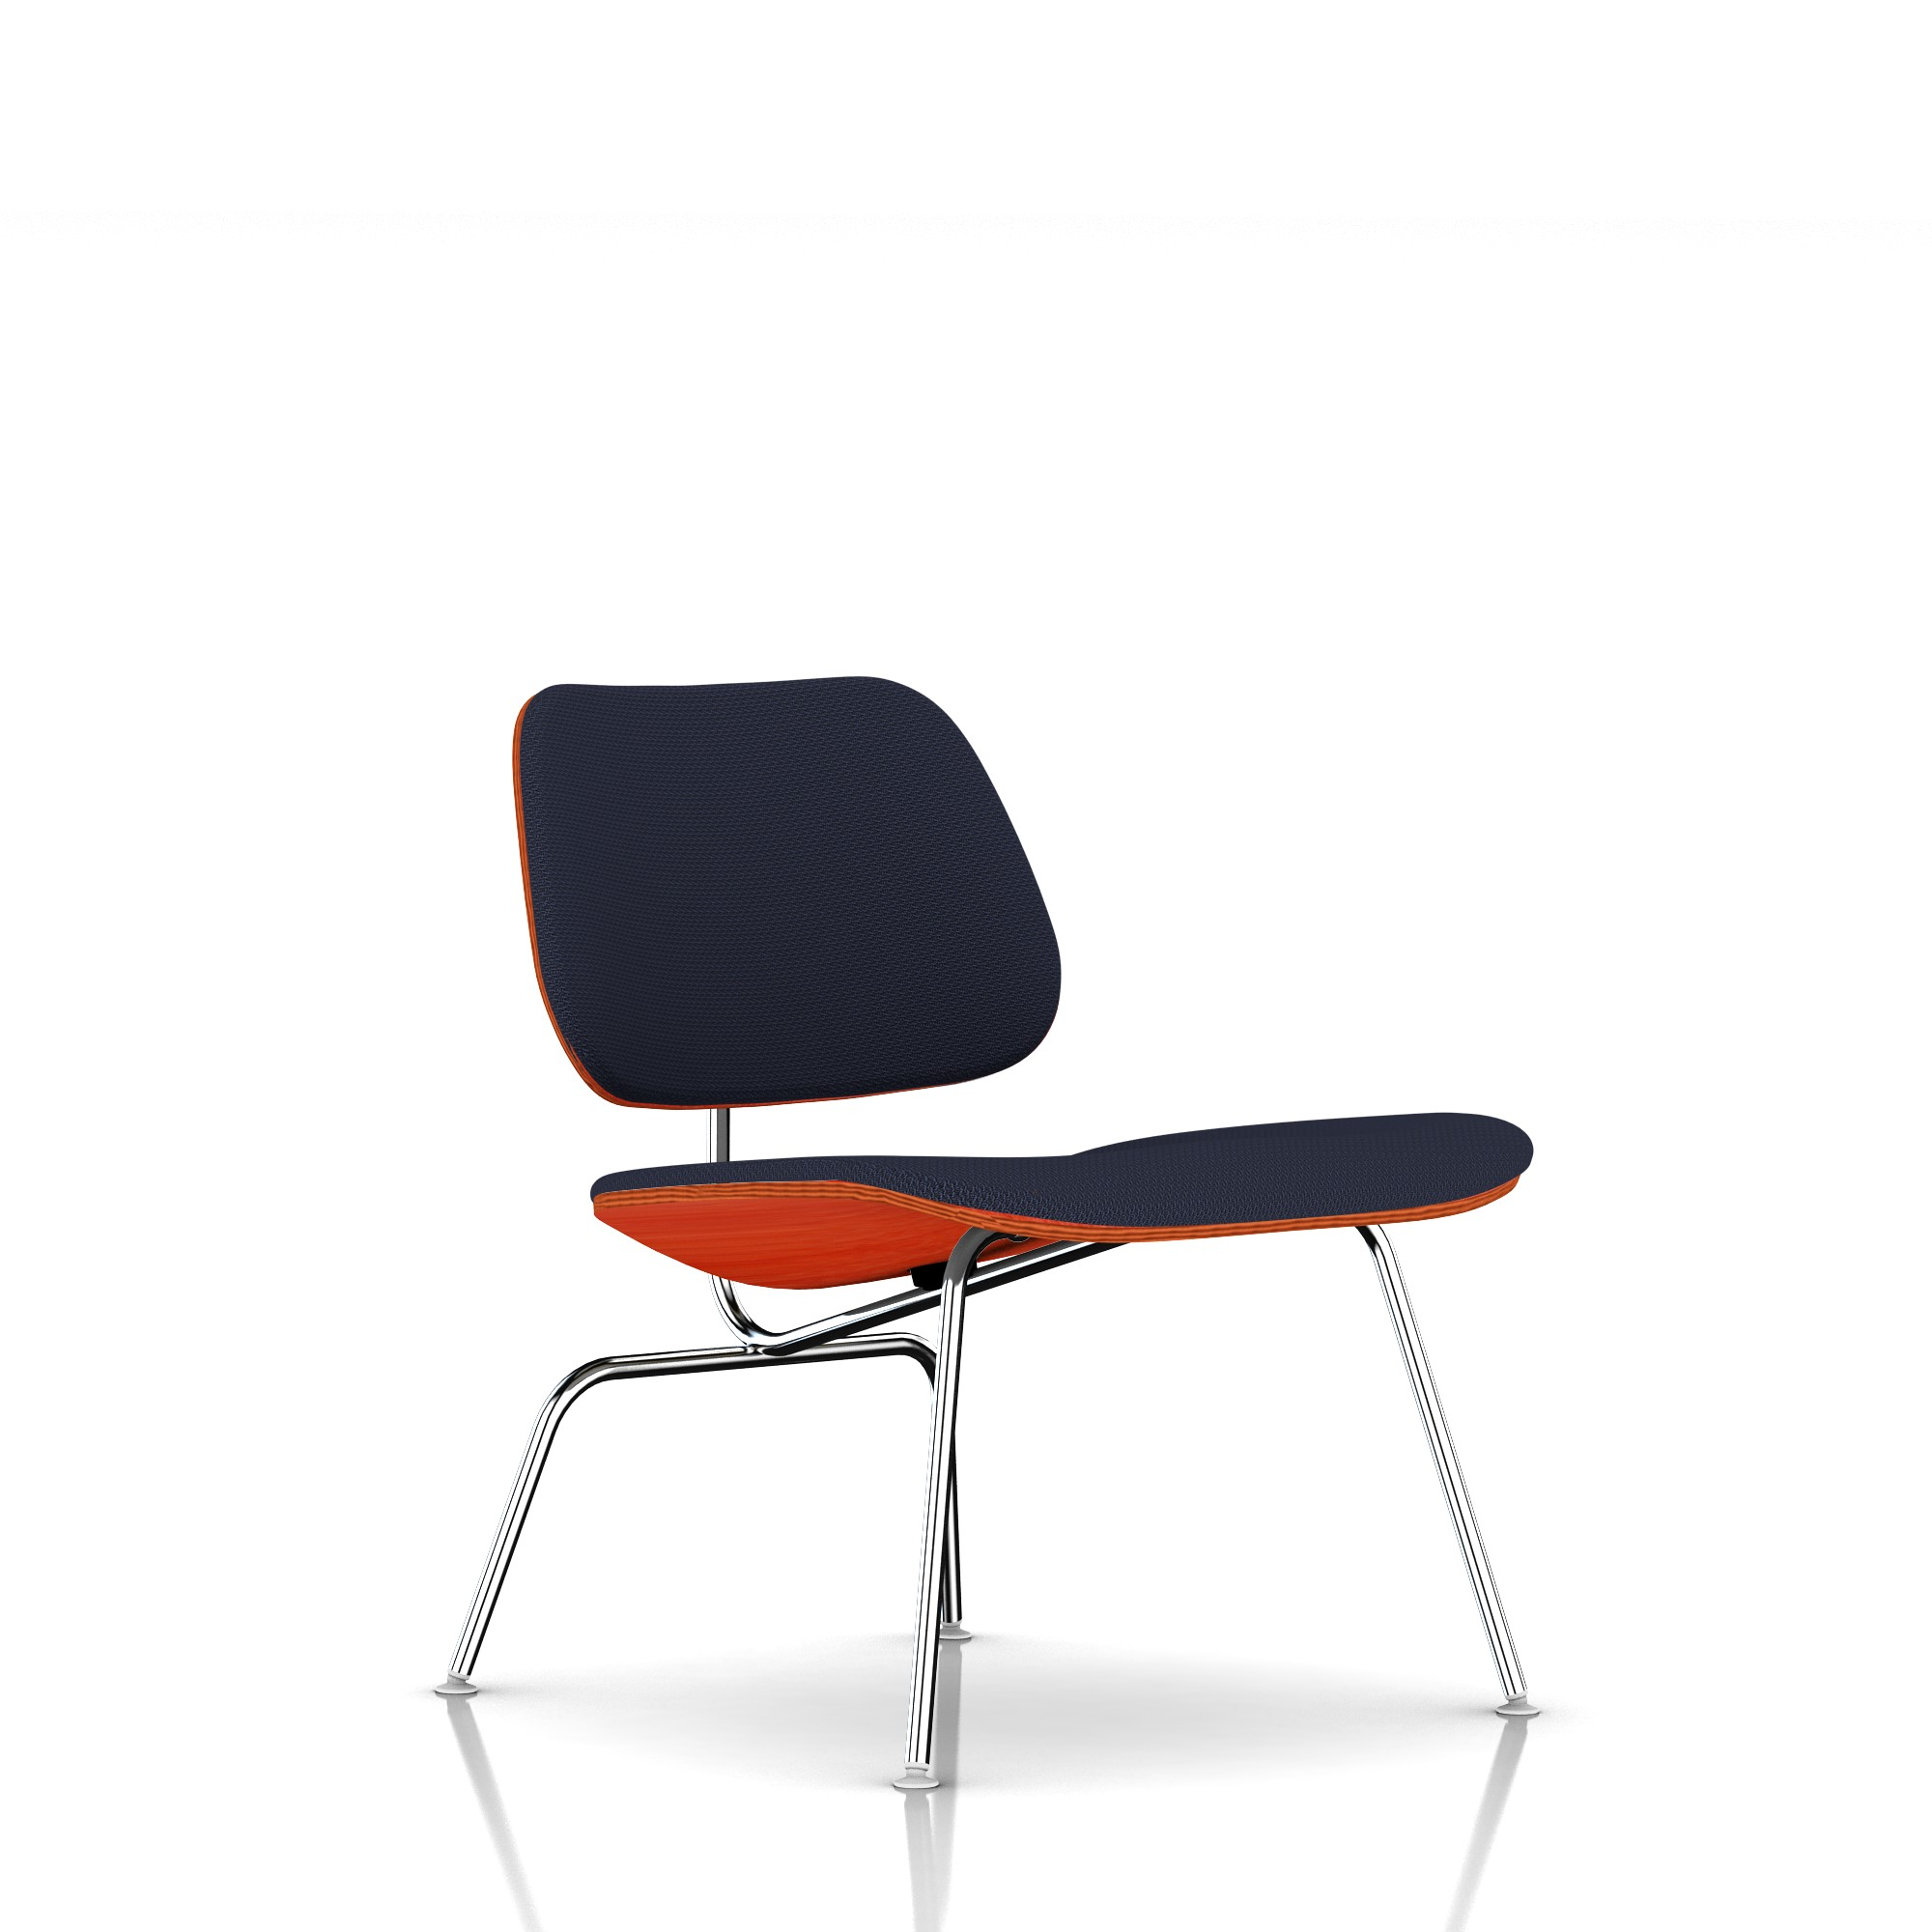 Eames Molded Plywood Lounge Chair in Twilight by Herman Miller